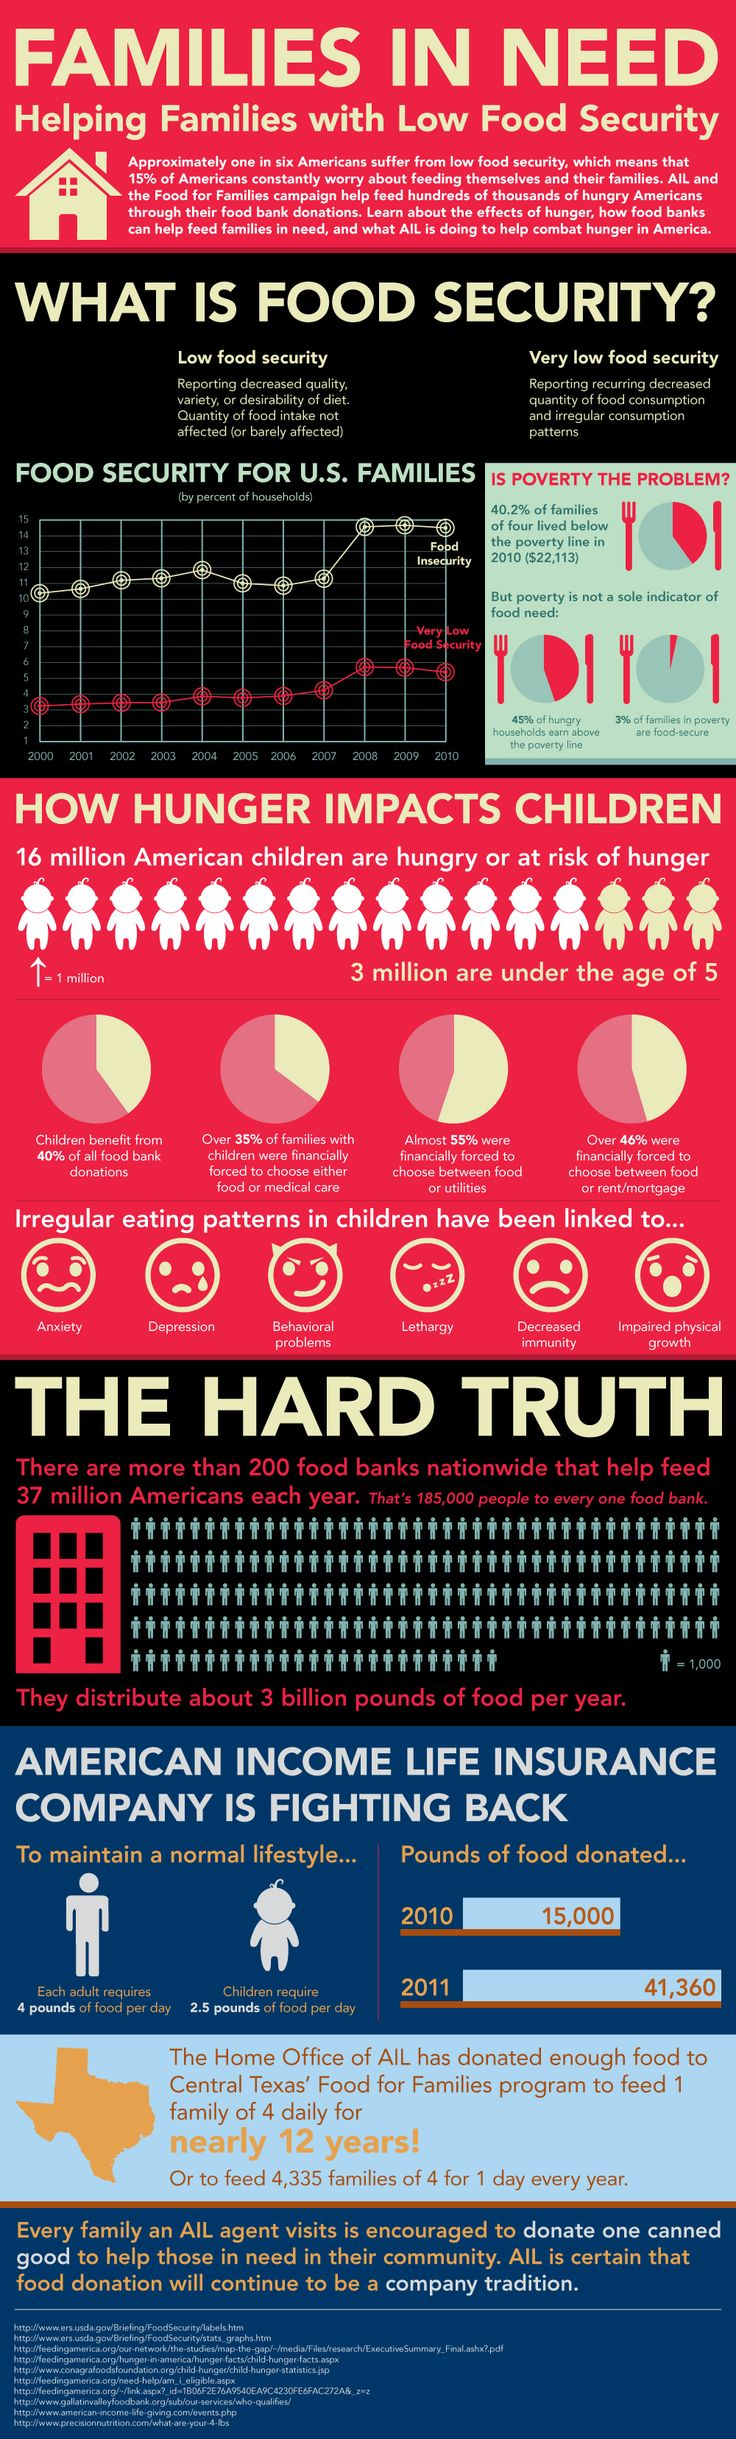 This Infographic demonstrates AIL & Food for Families philanthropic efforts to help combat hunger in America.